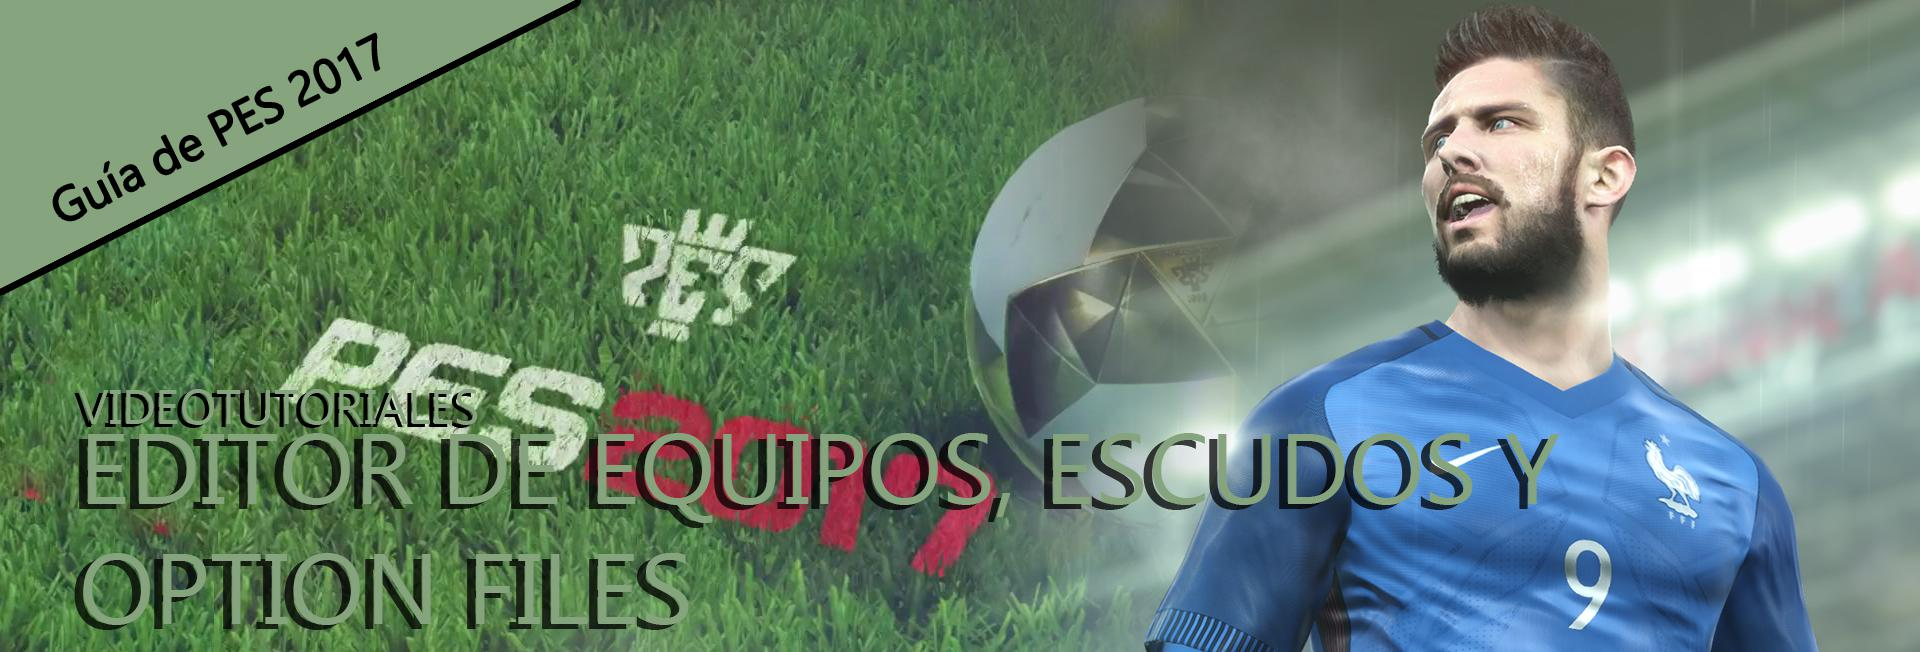 Guia De Pes 2017 Editor De Equipos Escudos Y Option Files